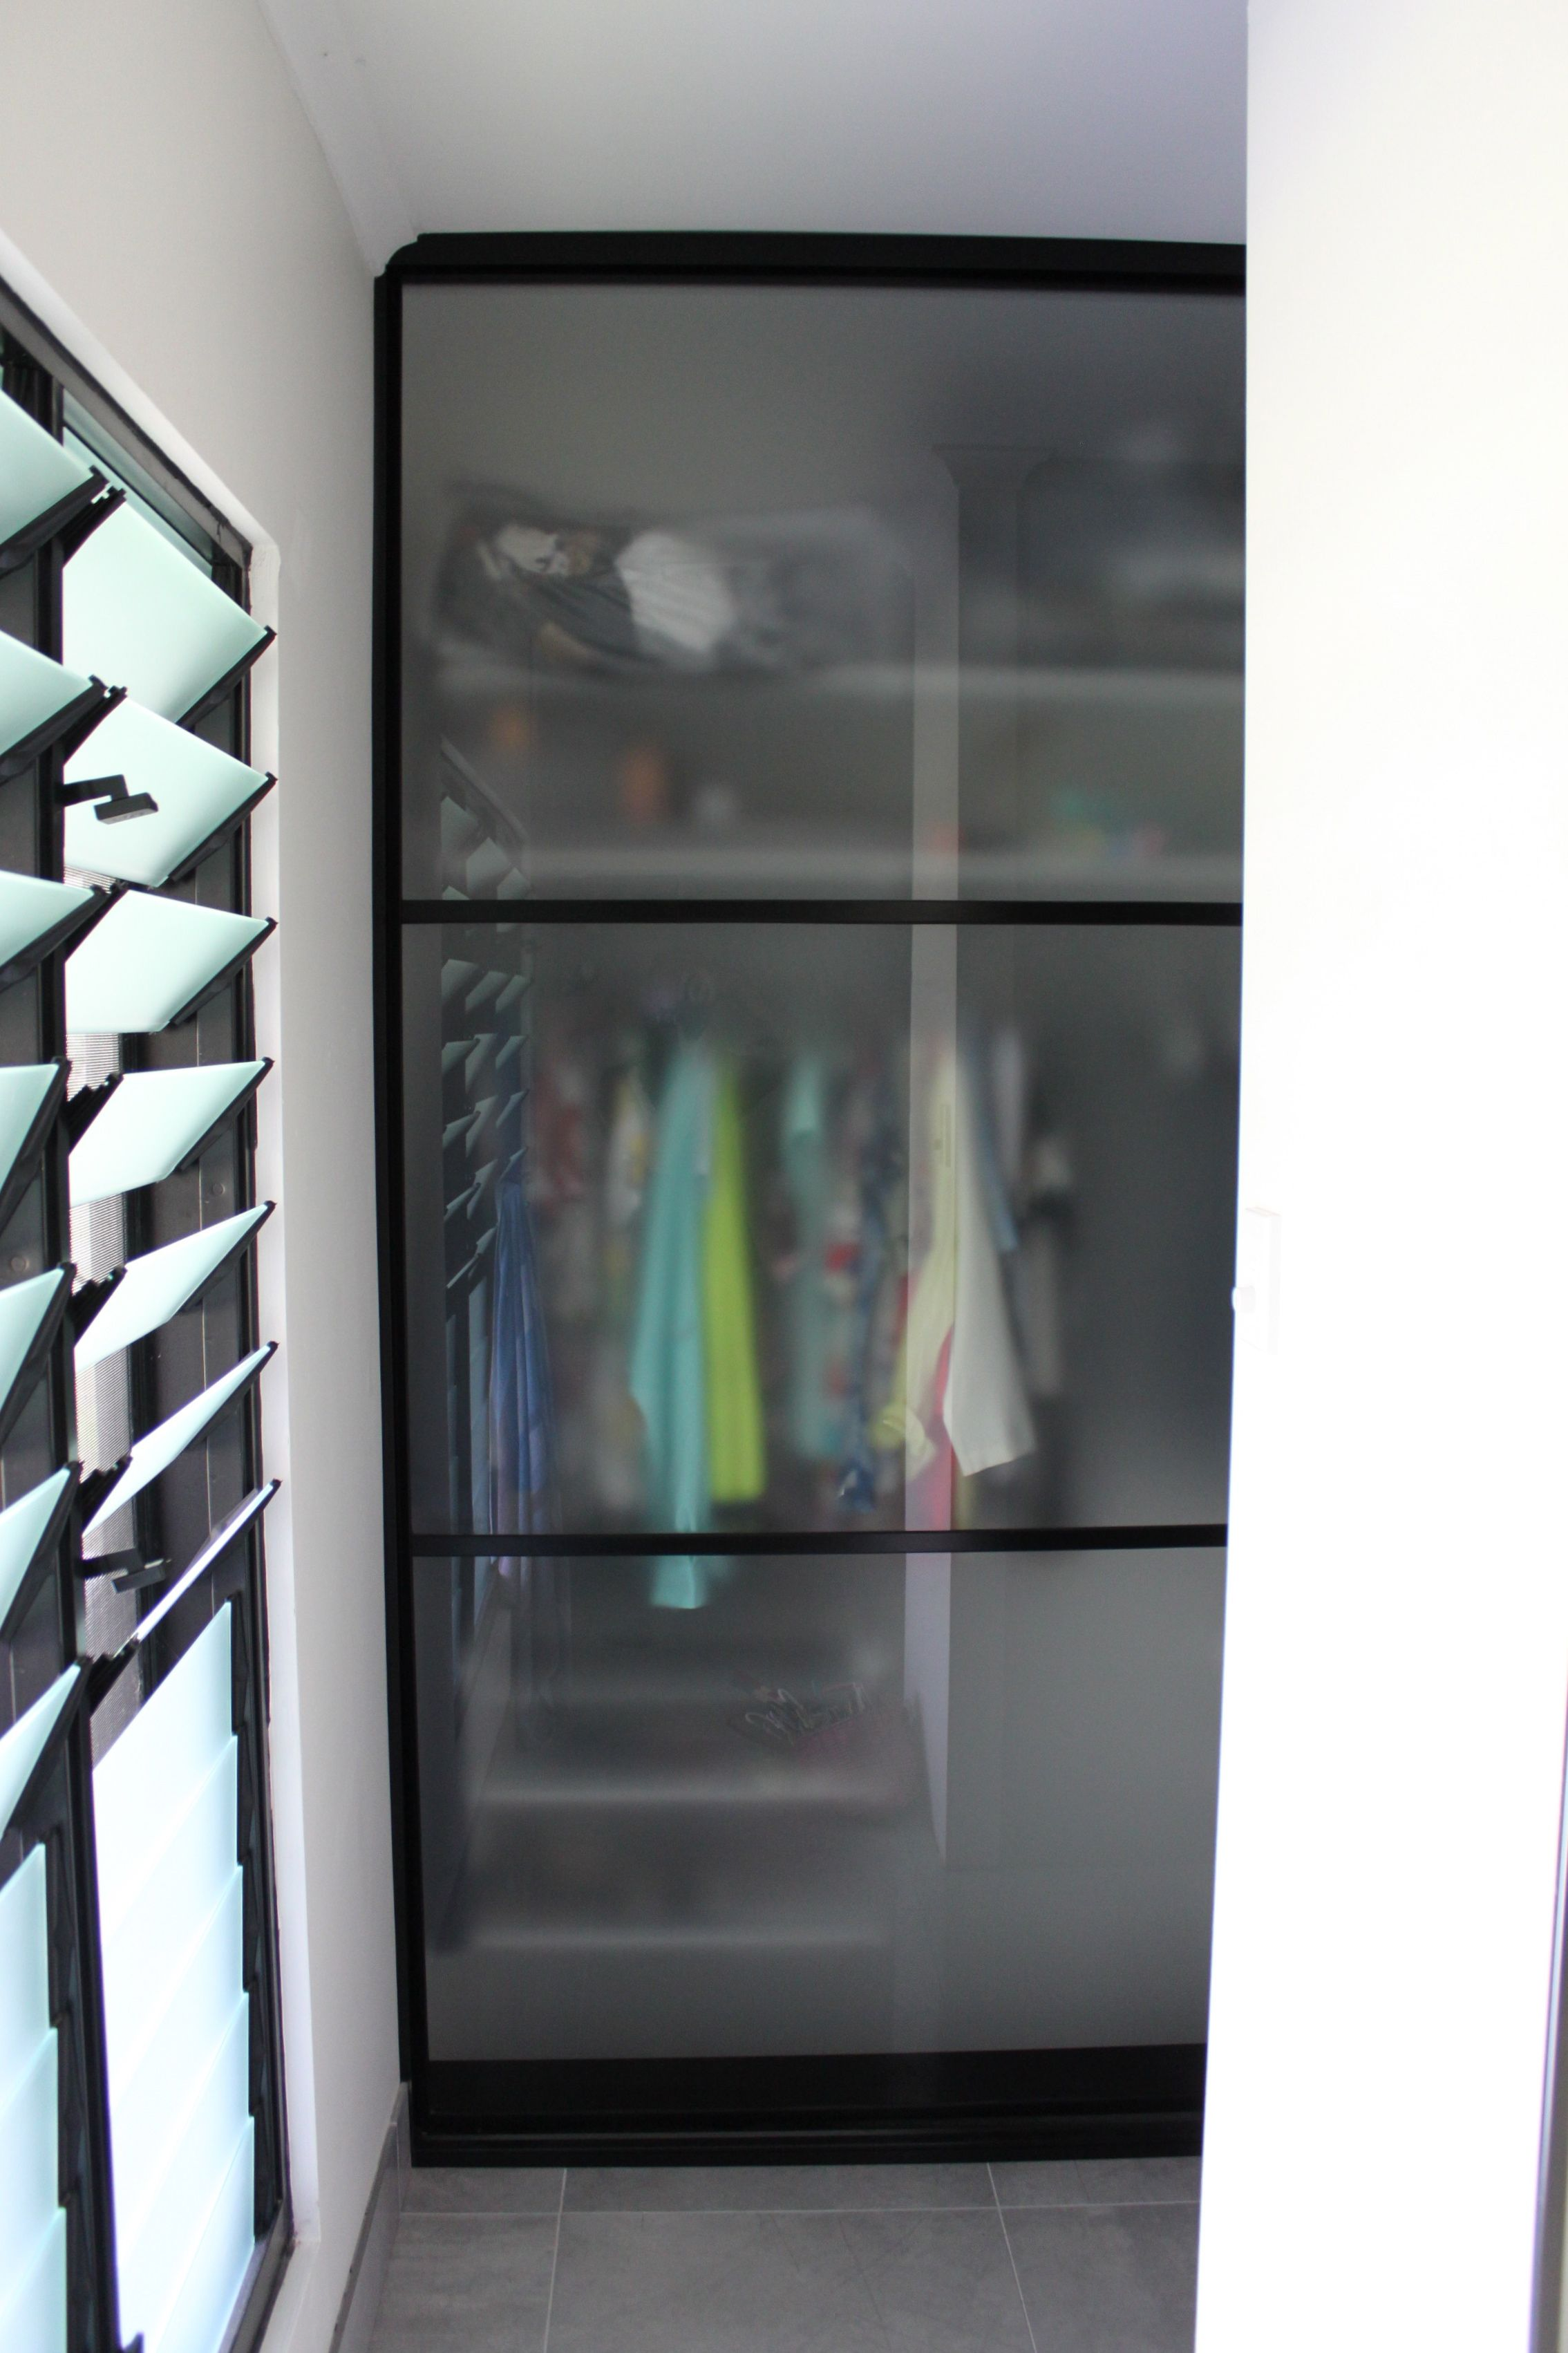 Nice 3 Panels Sliding Closet Doors Using Frosted Glass With Black Frames